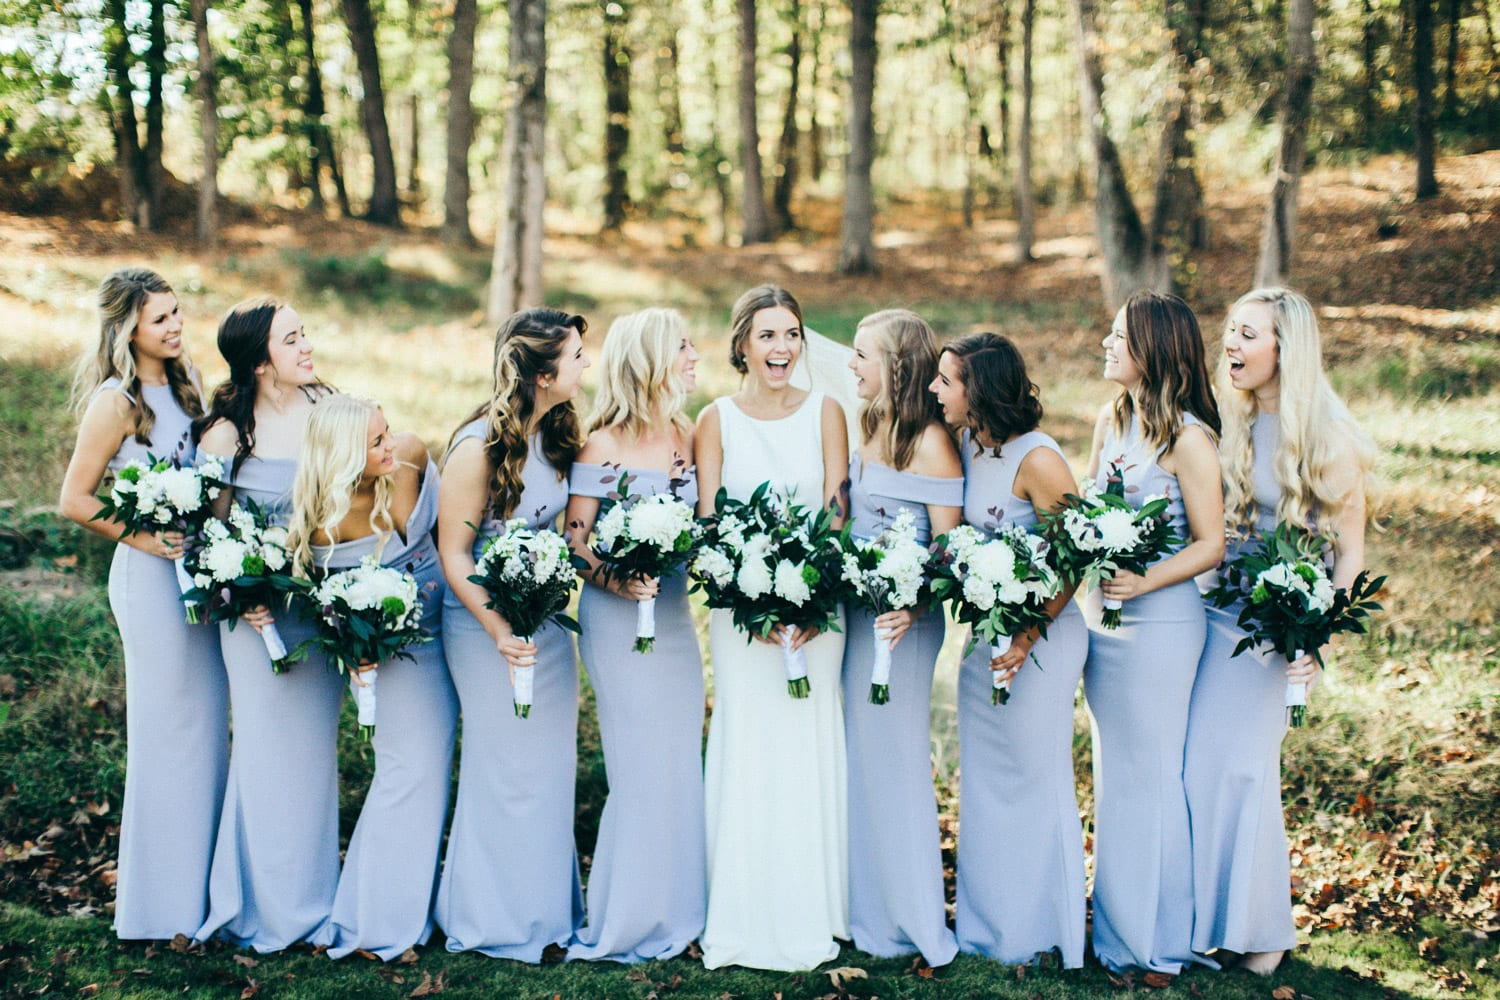 Bride and bridesmaids pose with flowers in the forest